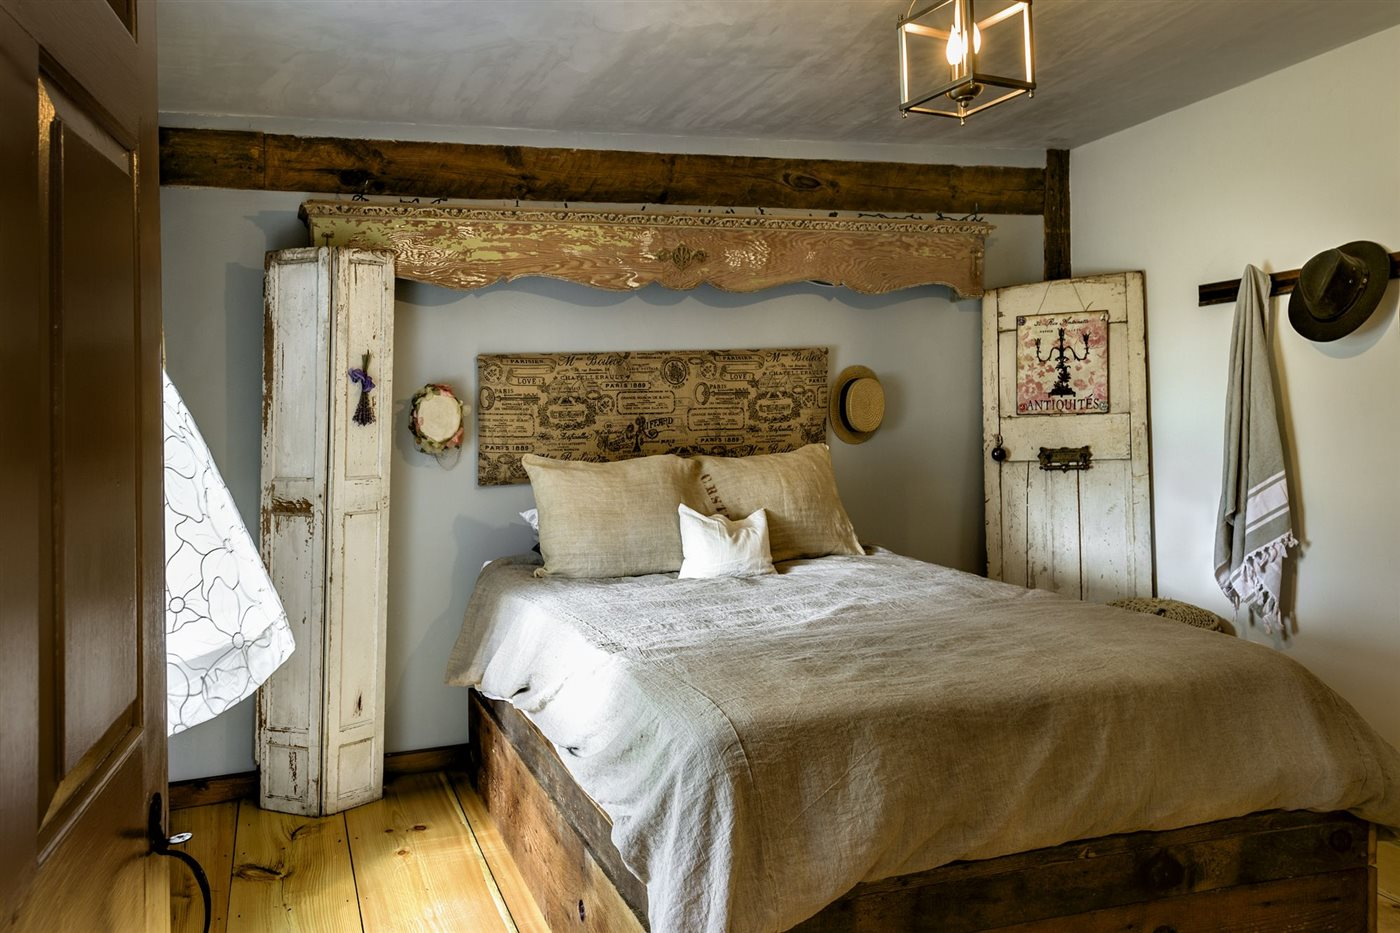 renovated rustic bedroom with washed wood details